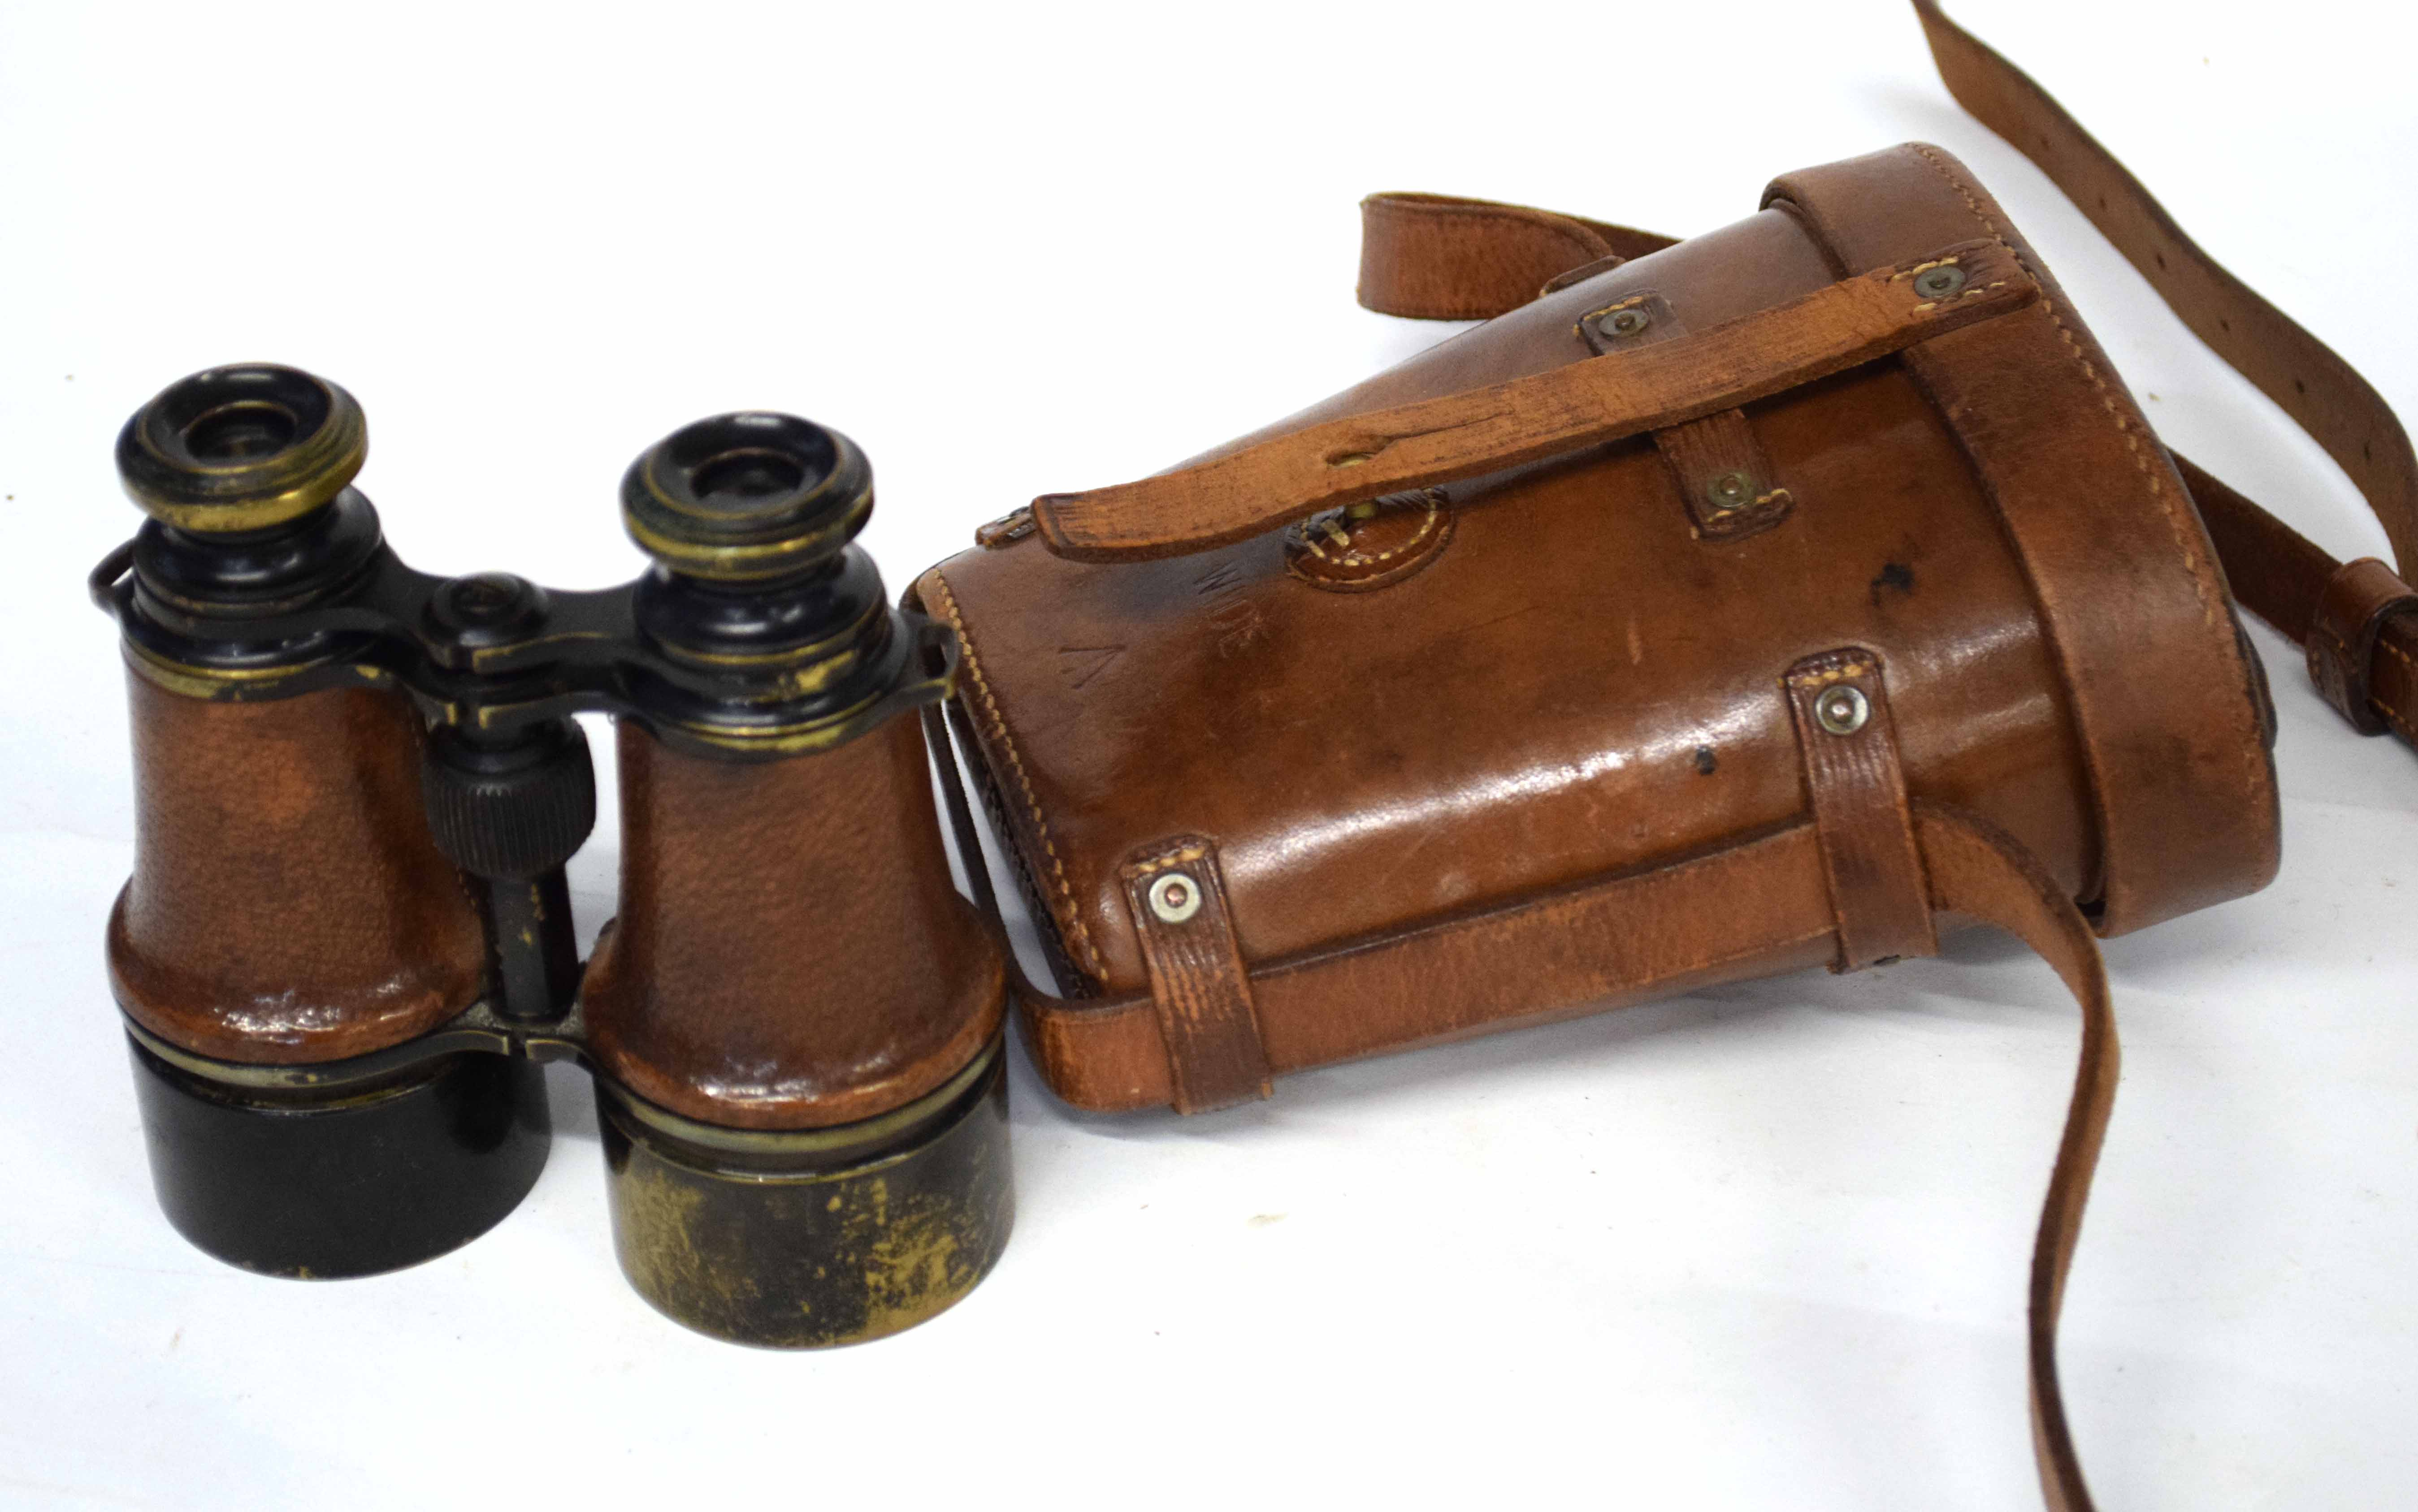 Pair of cased early 20th century British Military MK 5 binoculars stamped with War Dept Govt issue - Image 4 of 4